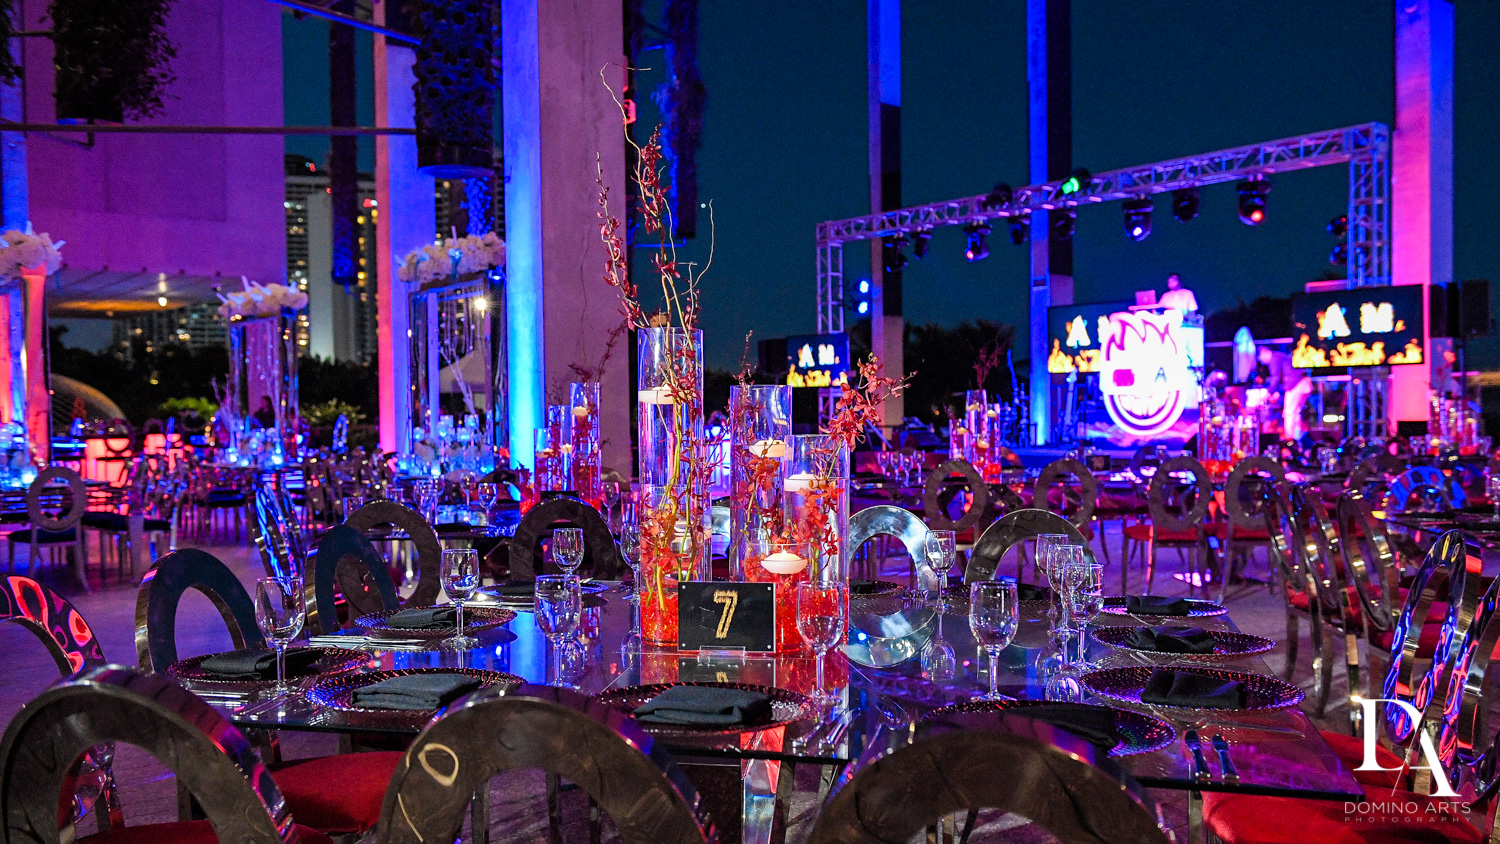 luxury decor at Fire & Ice B'Nai Mitzvah at Perez Art Museum Miami by Domino Arts Photography